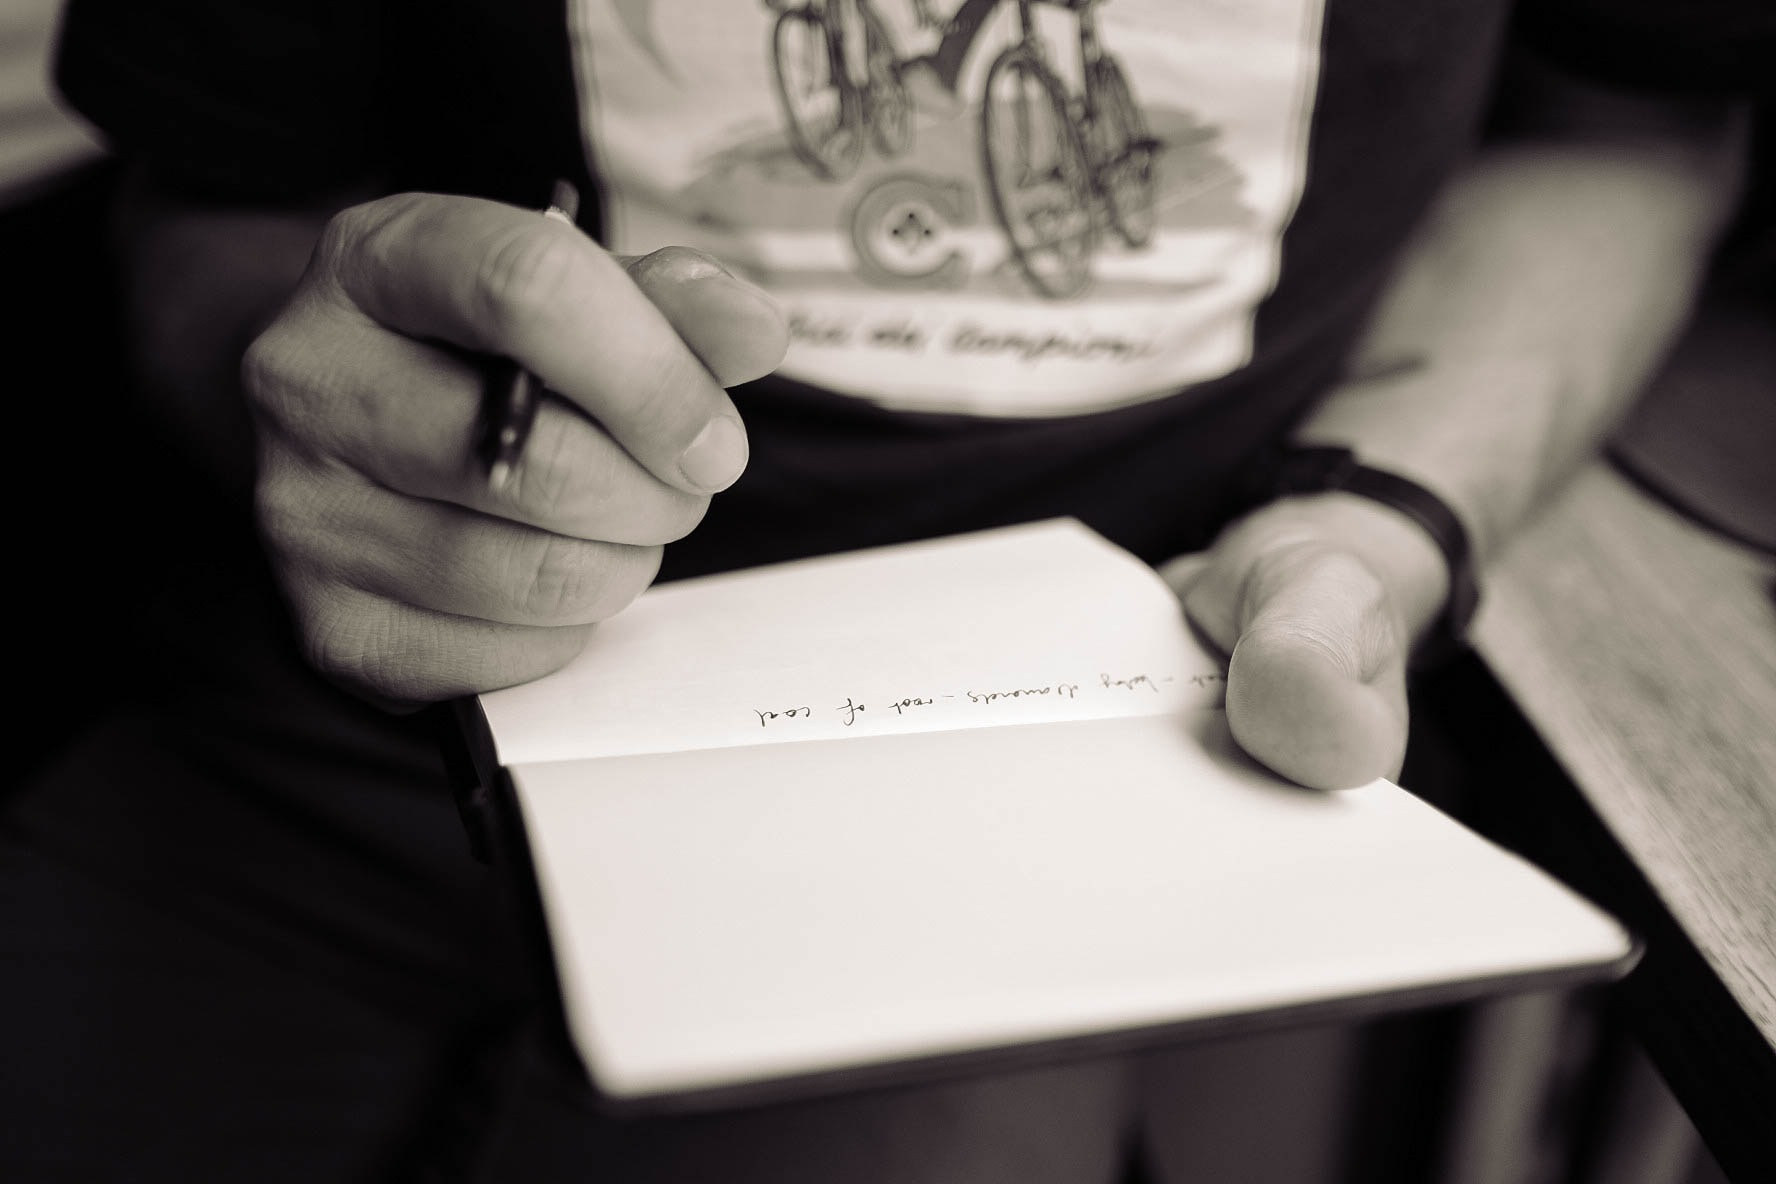 A desaturated shot of a person writing on a blank page